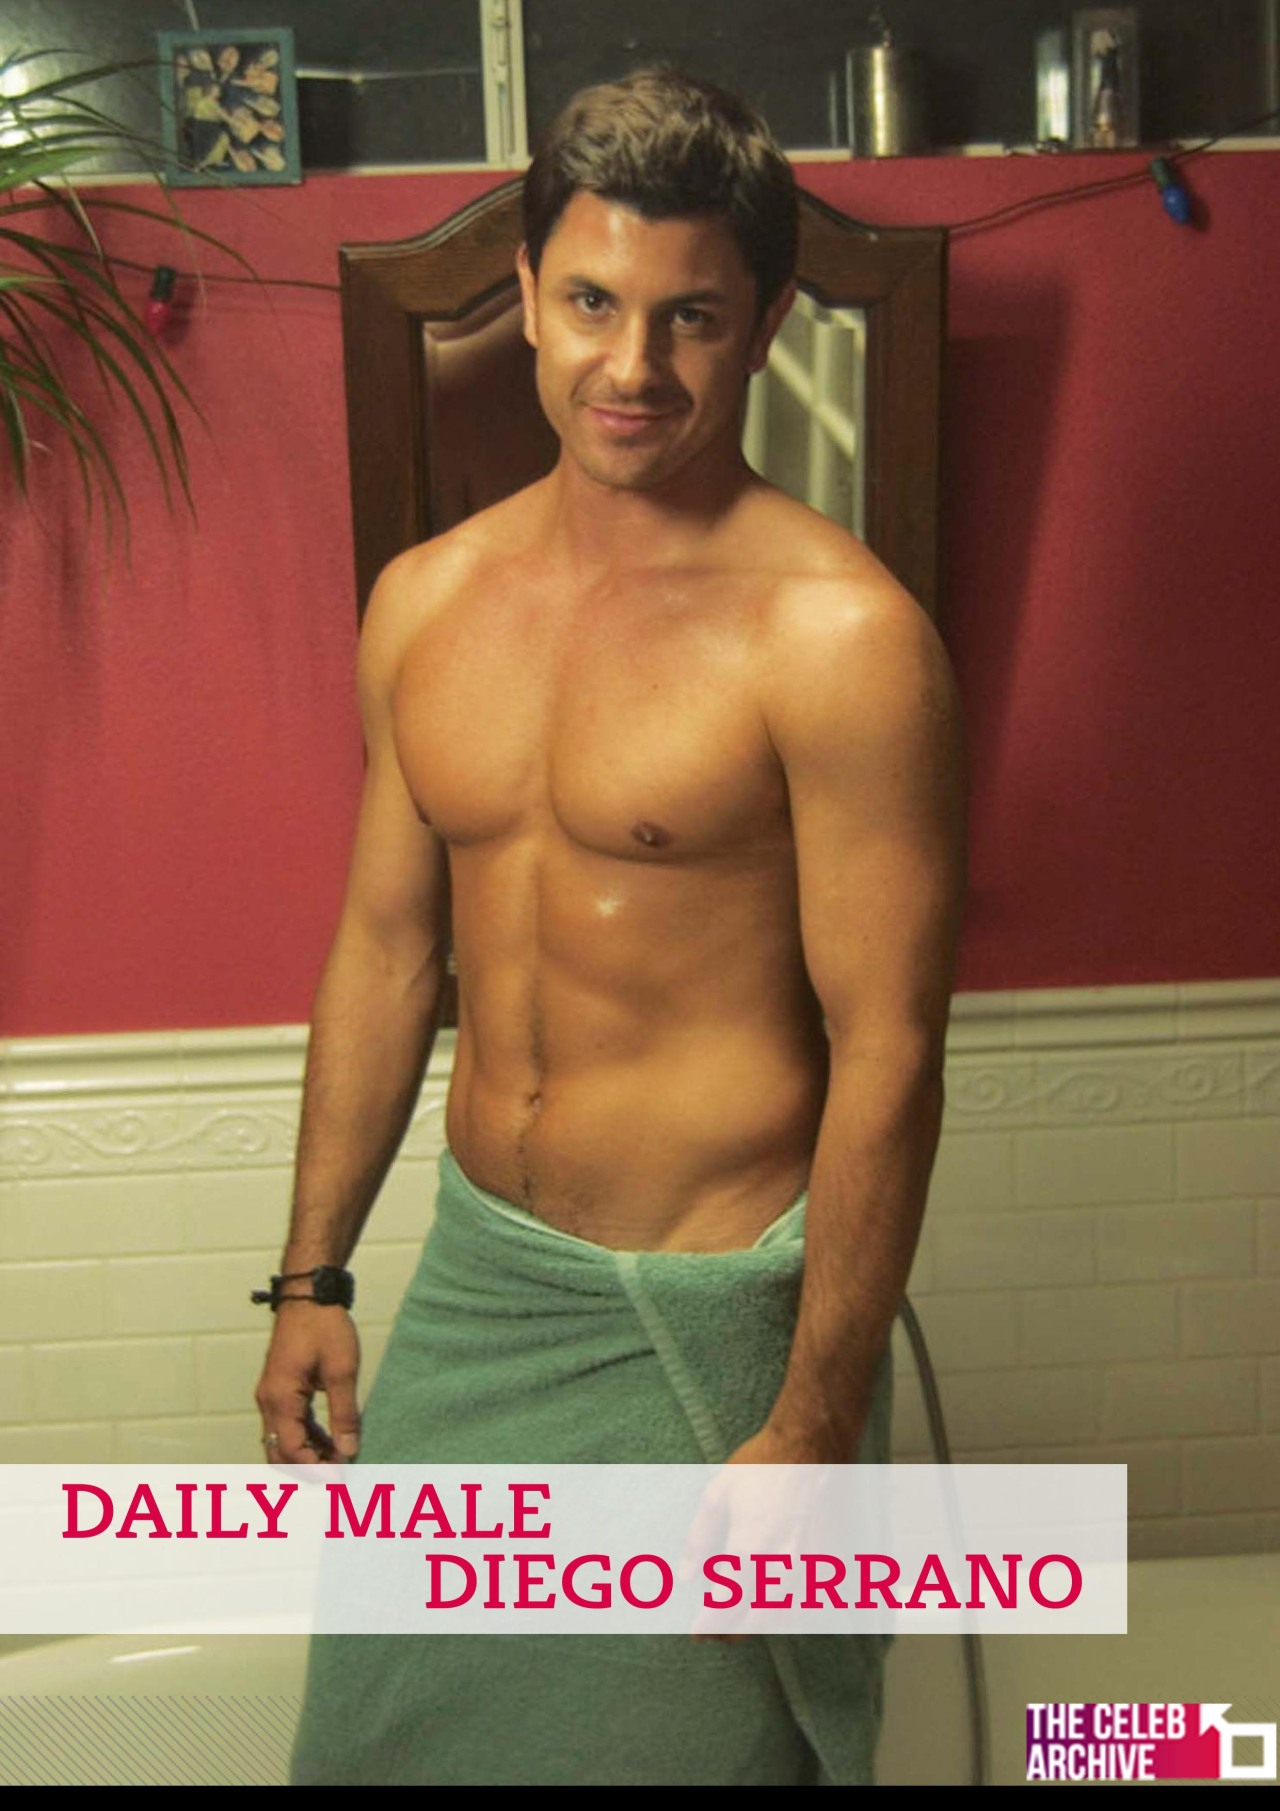 DAILY MALE - Diego Serrano Pictures Gallery > http://bit.ly/tcadiegoserrano